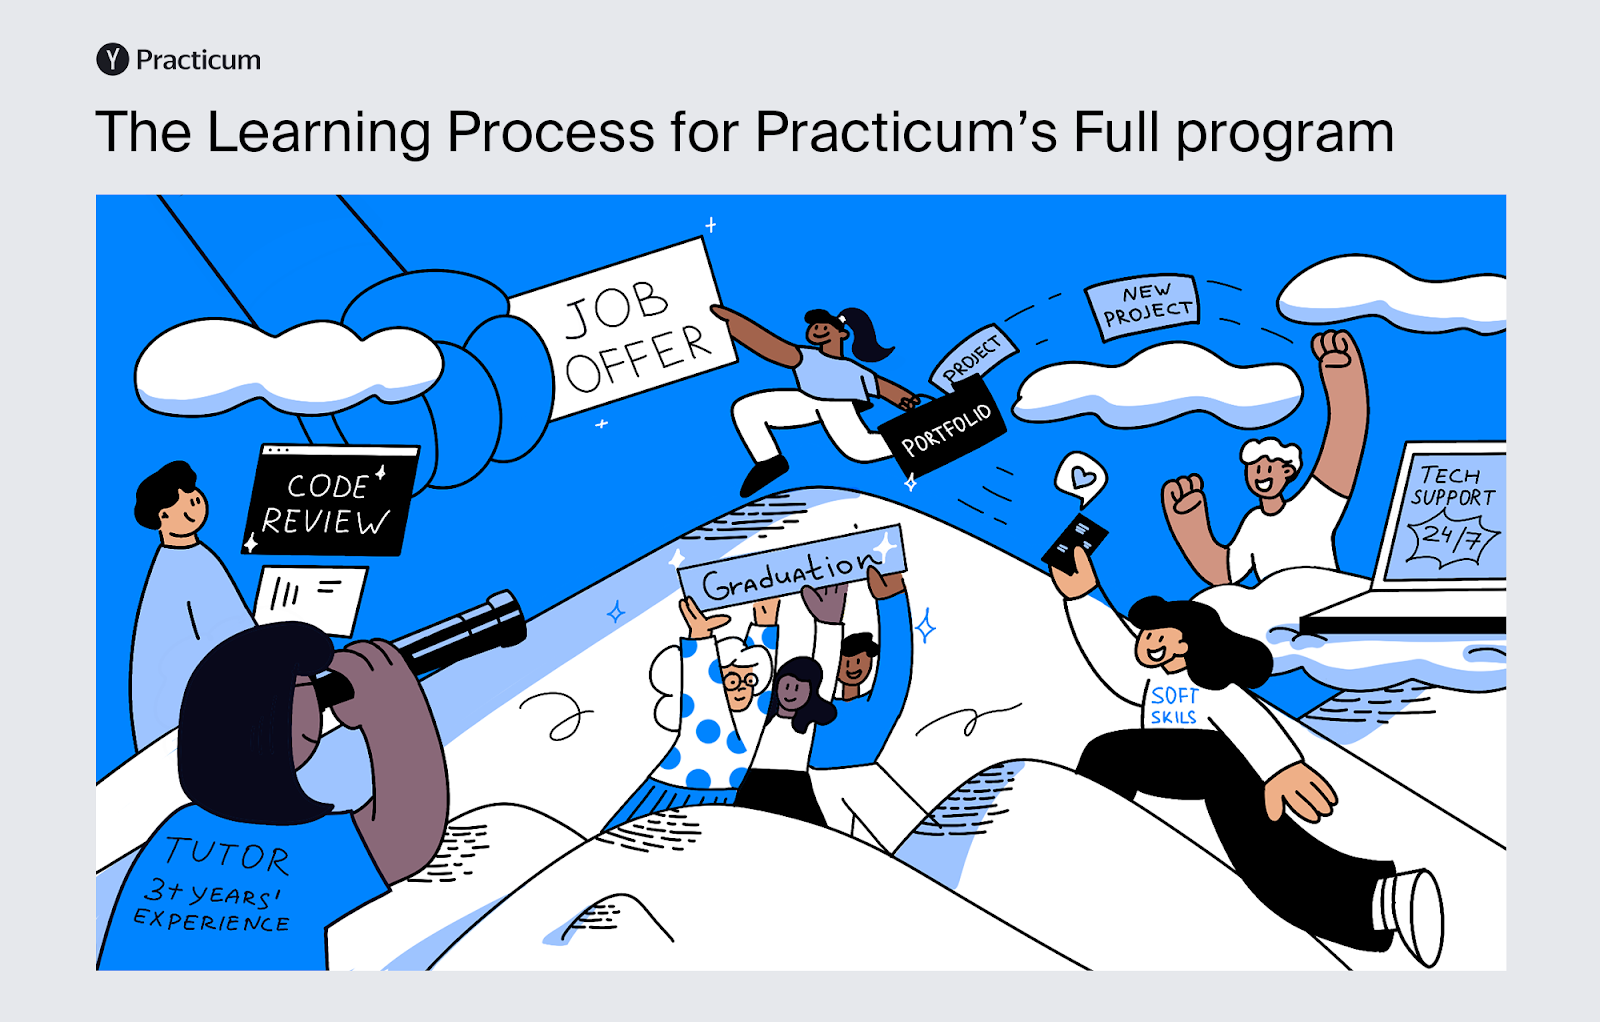 Infographic covering Practicum's learning process